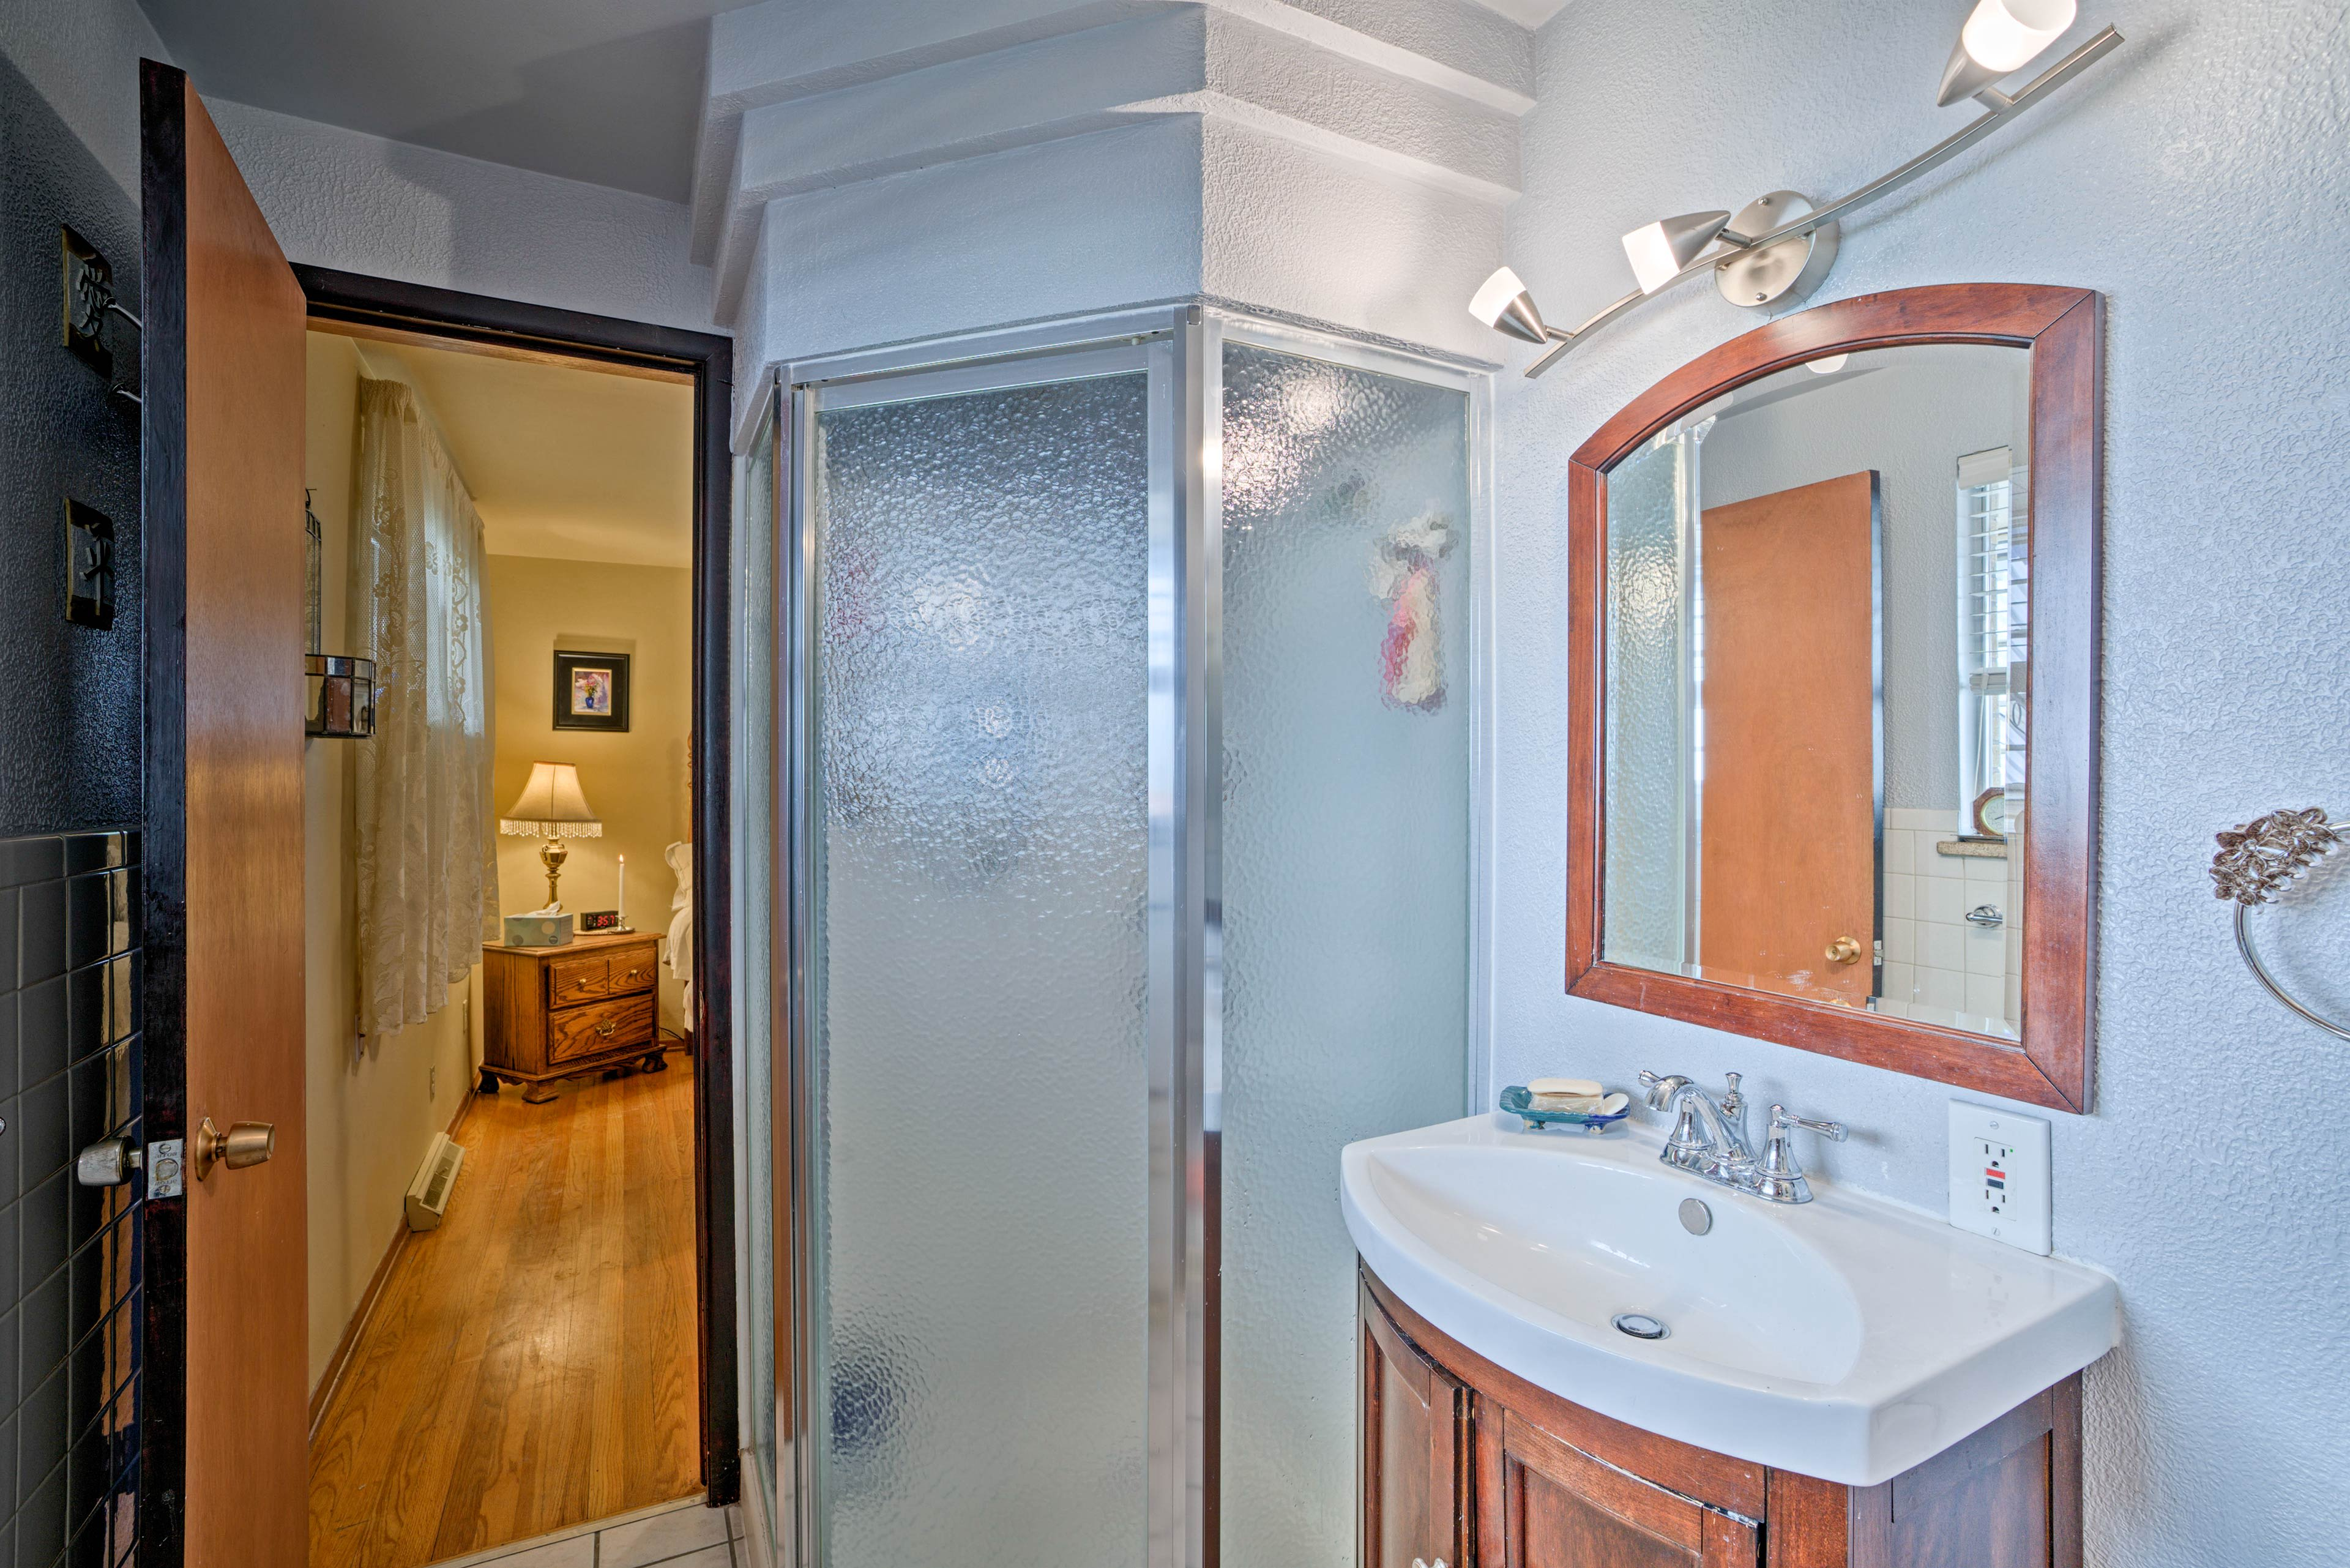 A walk-in shower highlights this bathroom.